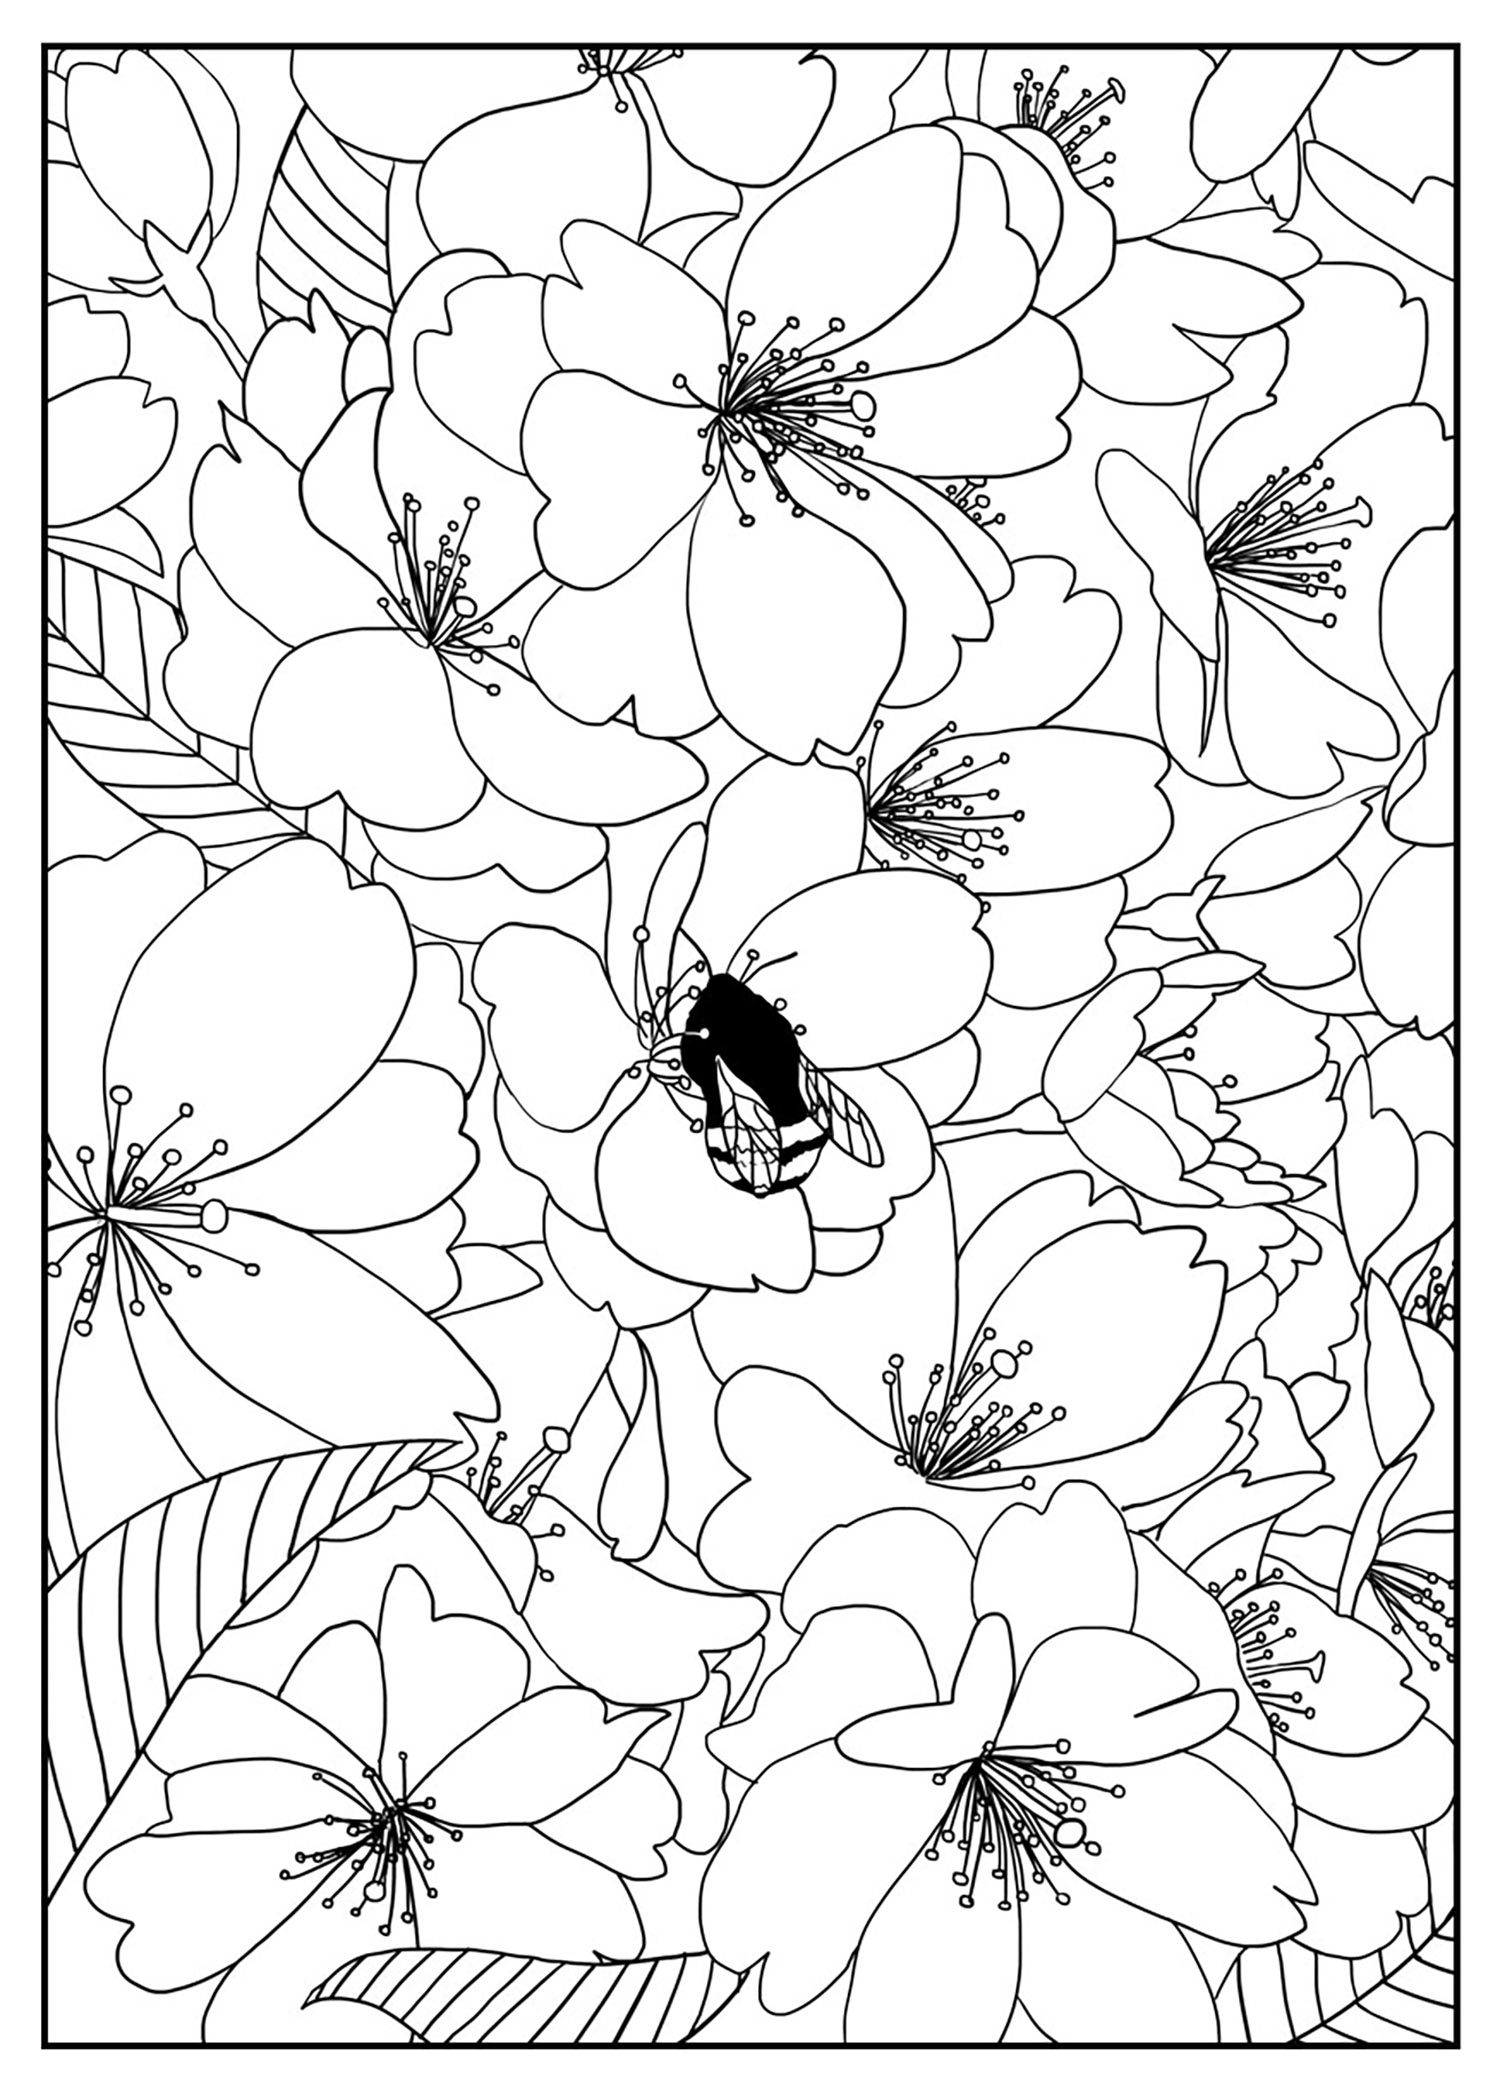 pictures of flowers for coloring free printable flower coloring pages for kids best pictures flowers for coloring of